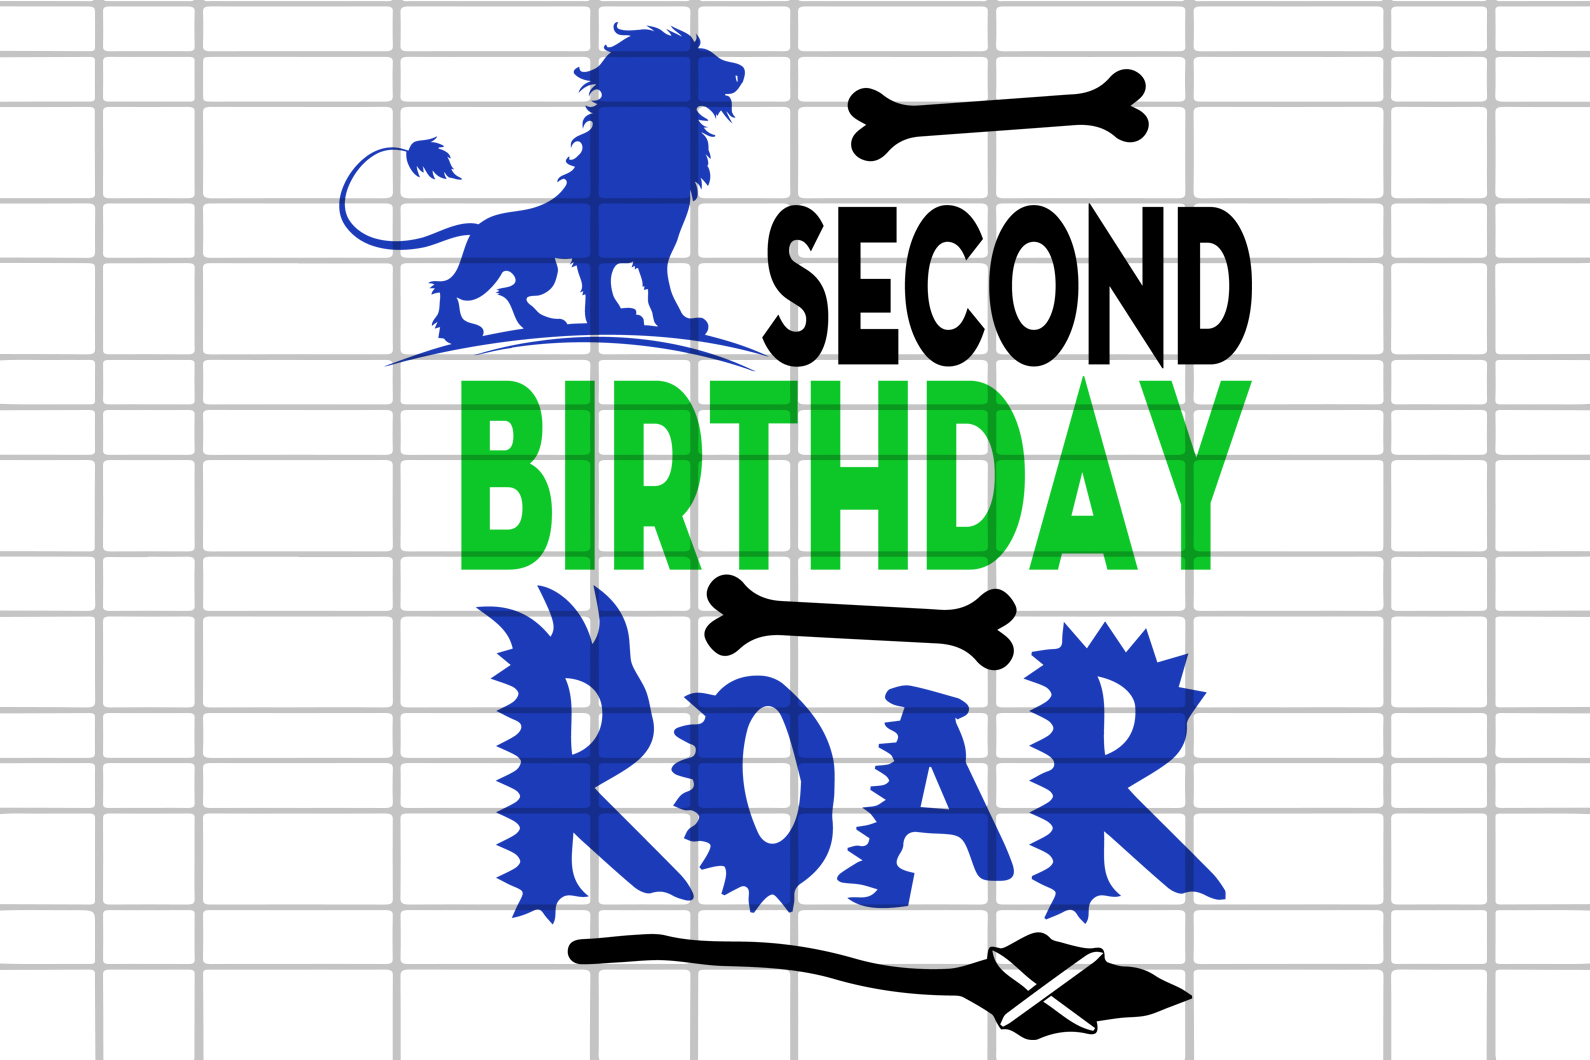 Second  birthday roar,dinosaur svg,birthday svg,birthday boy svg,2nd birthday,birthday anniversary,two years,svg cut files, svg clipart, silhouette svg, cricut svg files, decal and vinyl